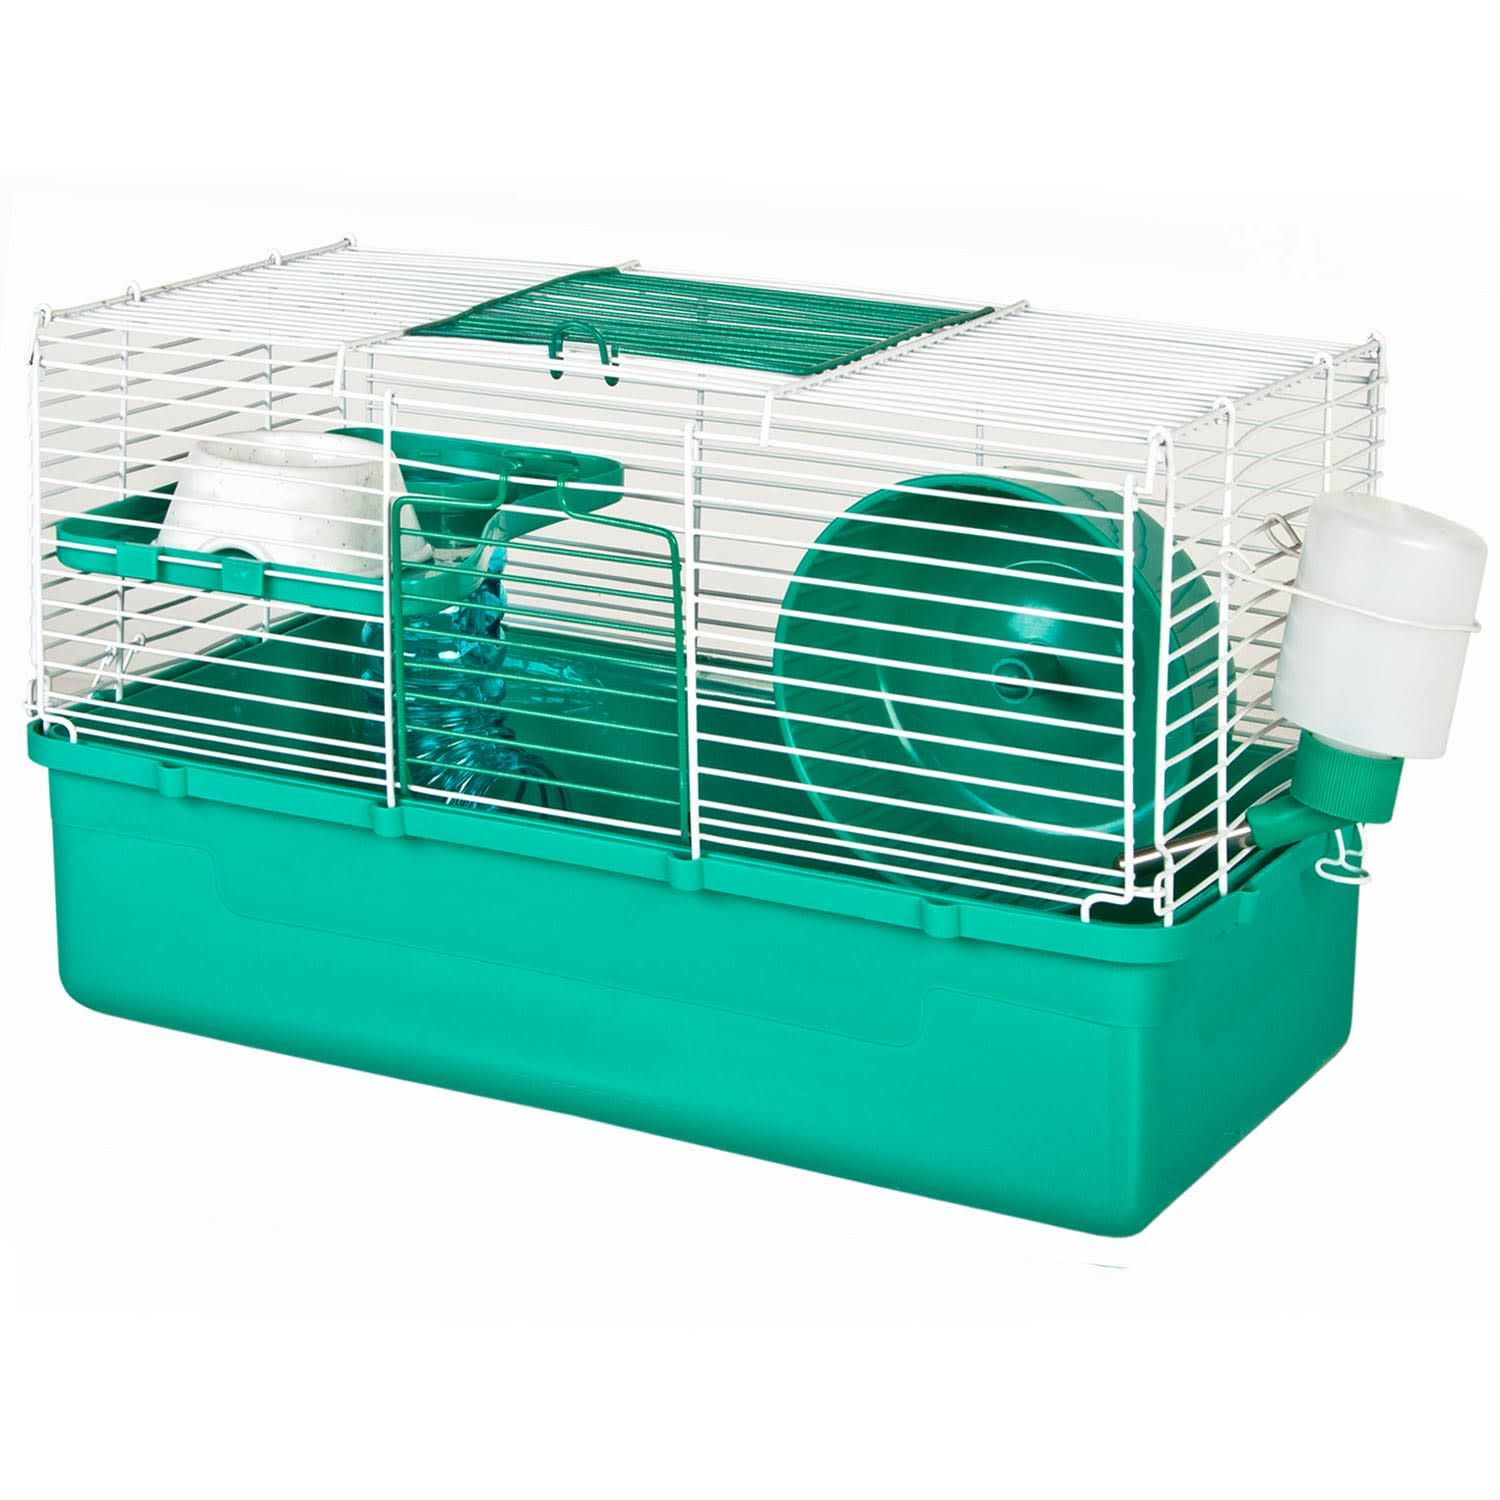 WARE Home Sweet Home Teal 1 Story Hamster Cage, 15.5 IN